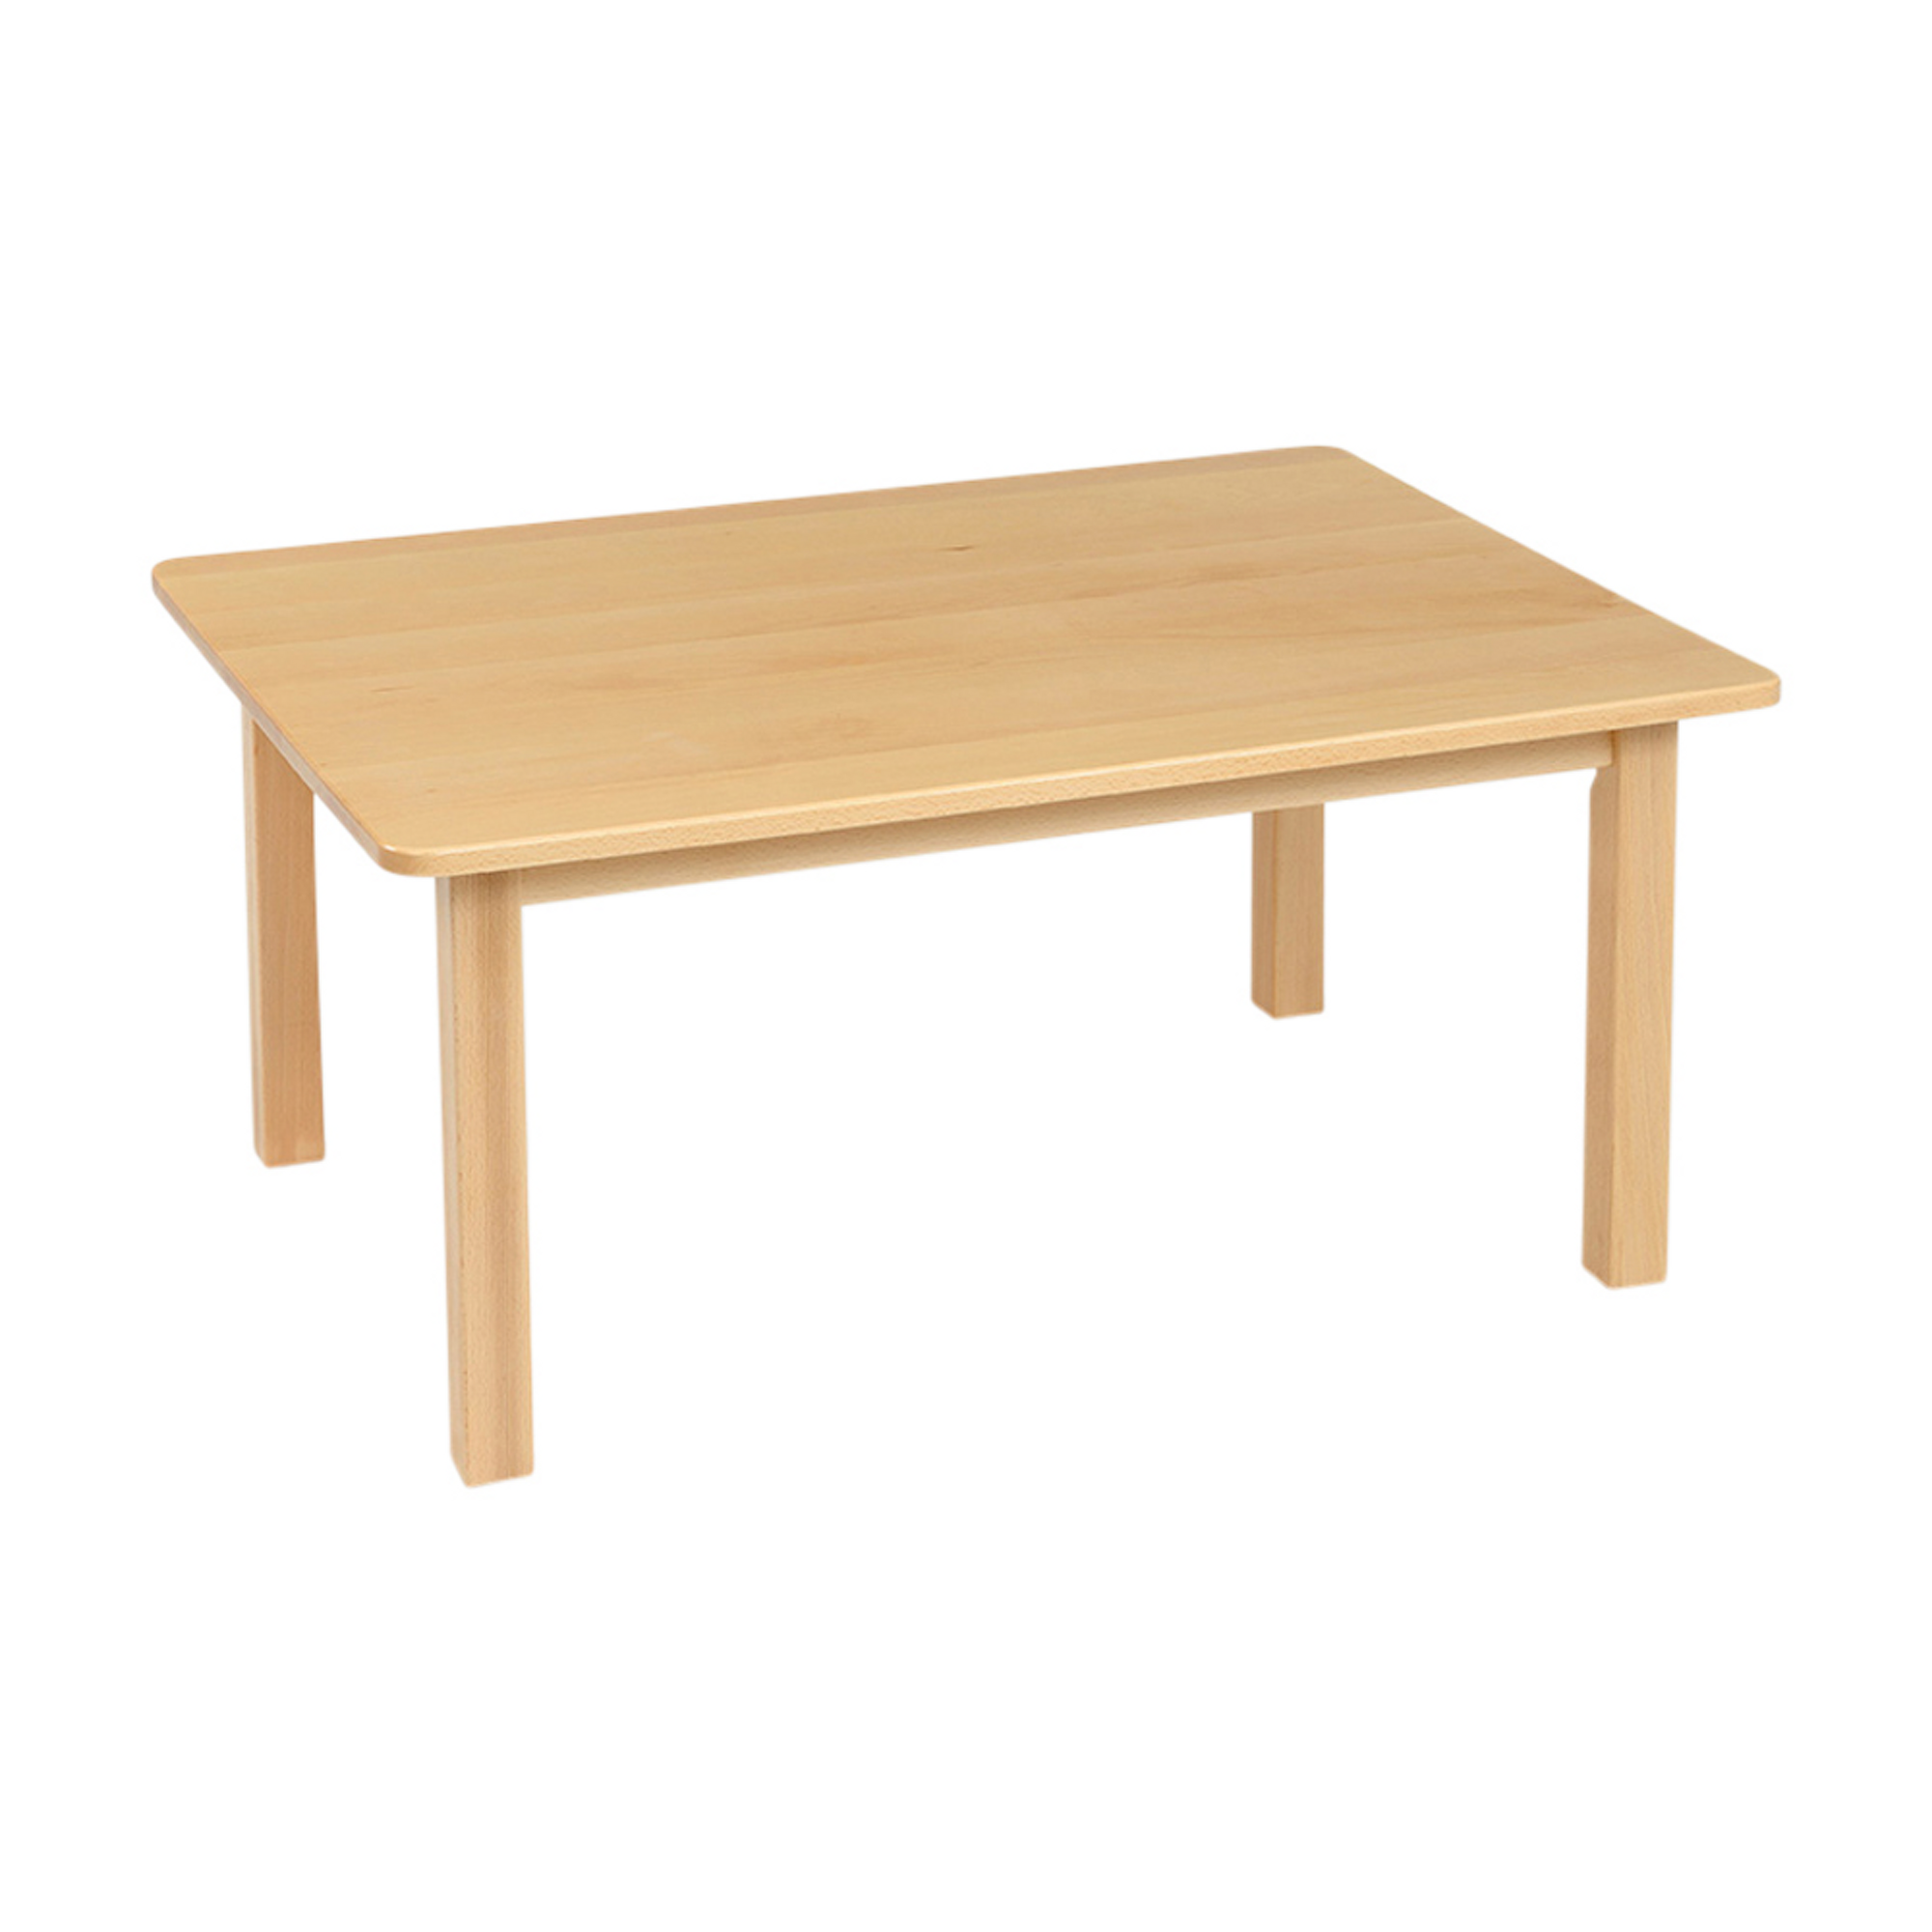 Galt Rectangular Wooden Classroom Table 960 X 690 X 465mm Beech He48773660 Hope Education